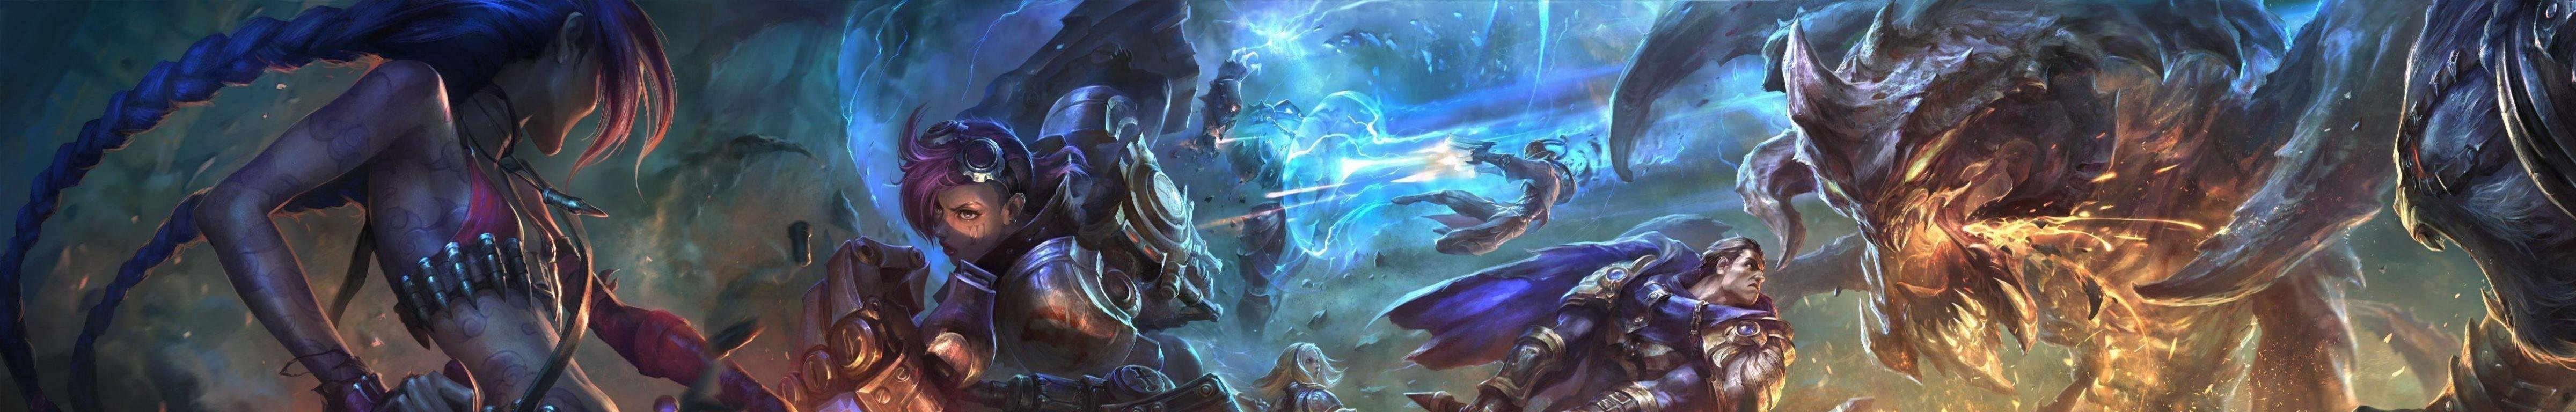 Awesome League Of Legends (LOL) free wallpaper ID:171019 for triple monitor 4800x768 desktop